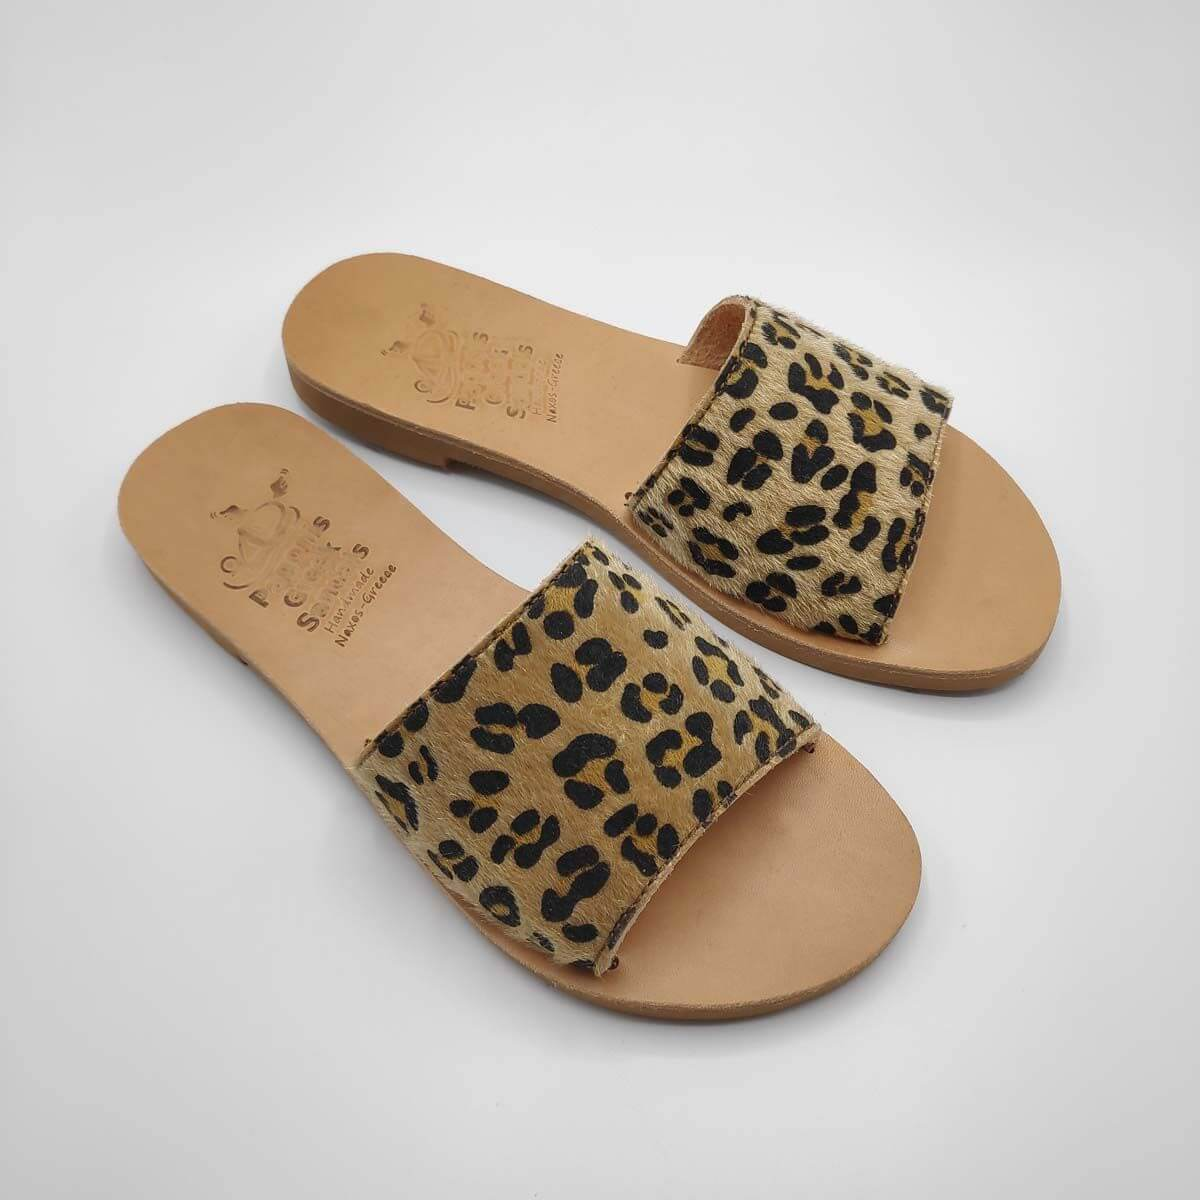 Slides with Fur | Demosthenes Pony | Pagonis Greek Sandals